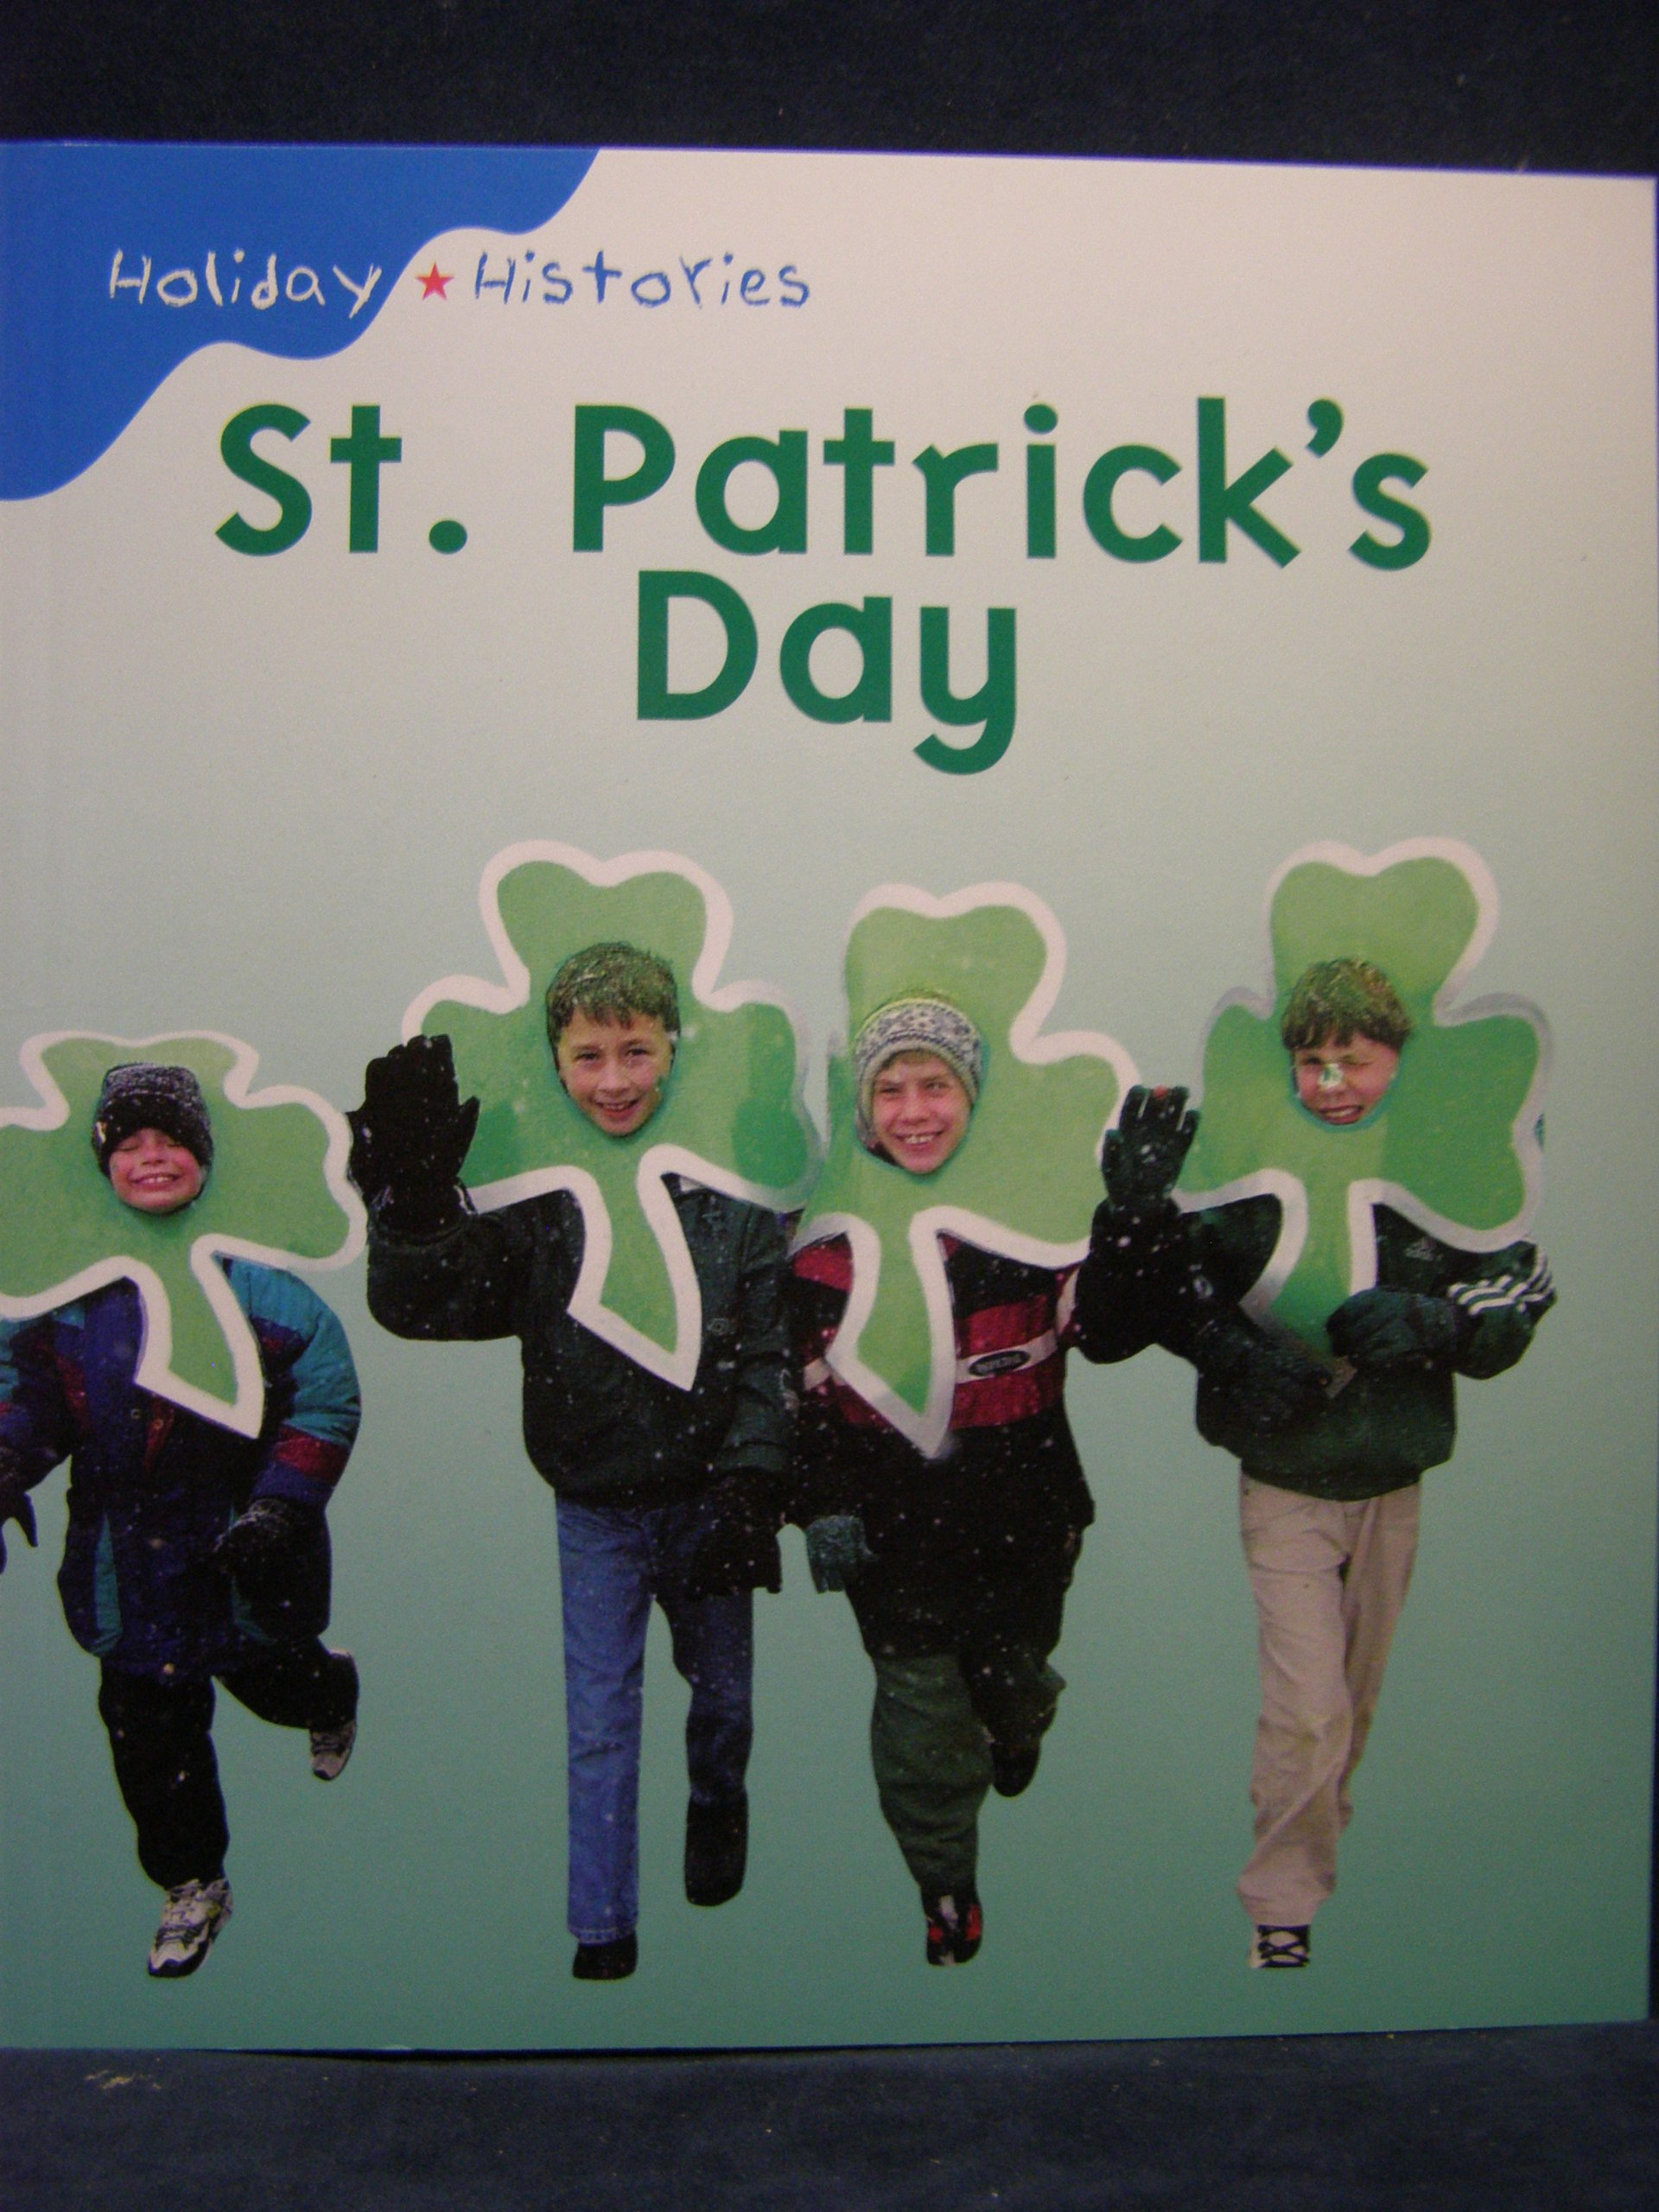 St. Patrick's Day (Holiday Histories)